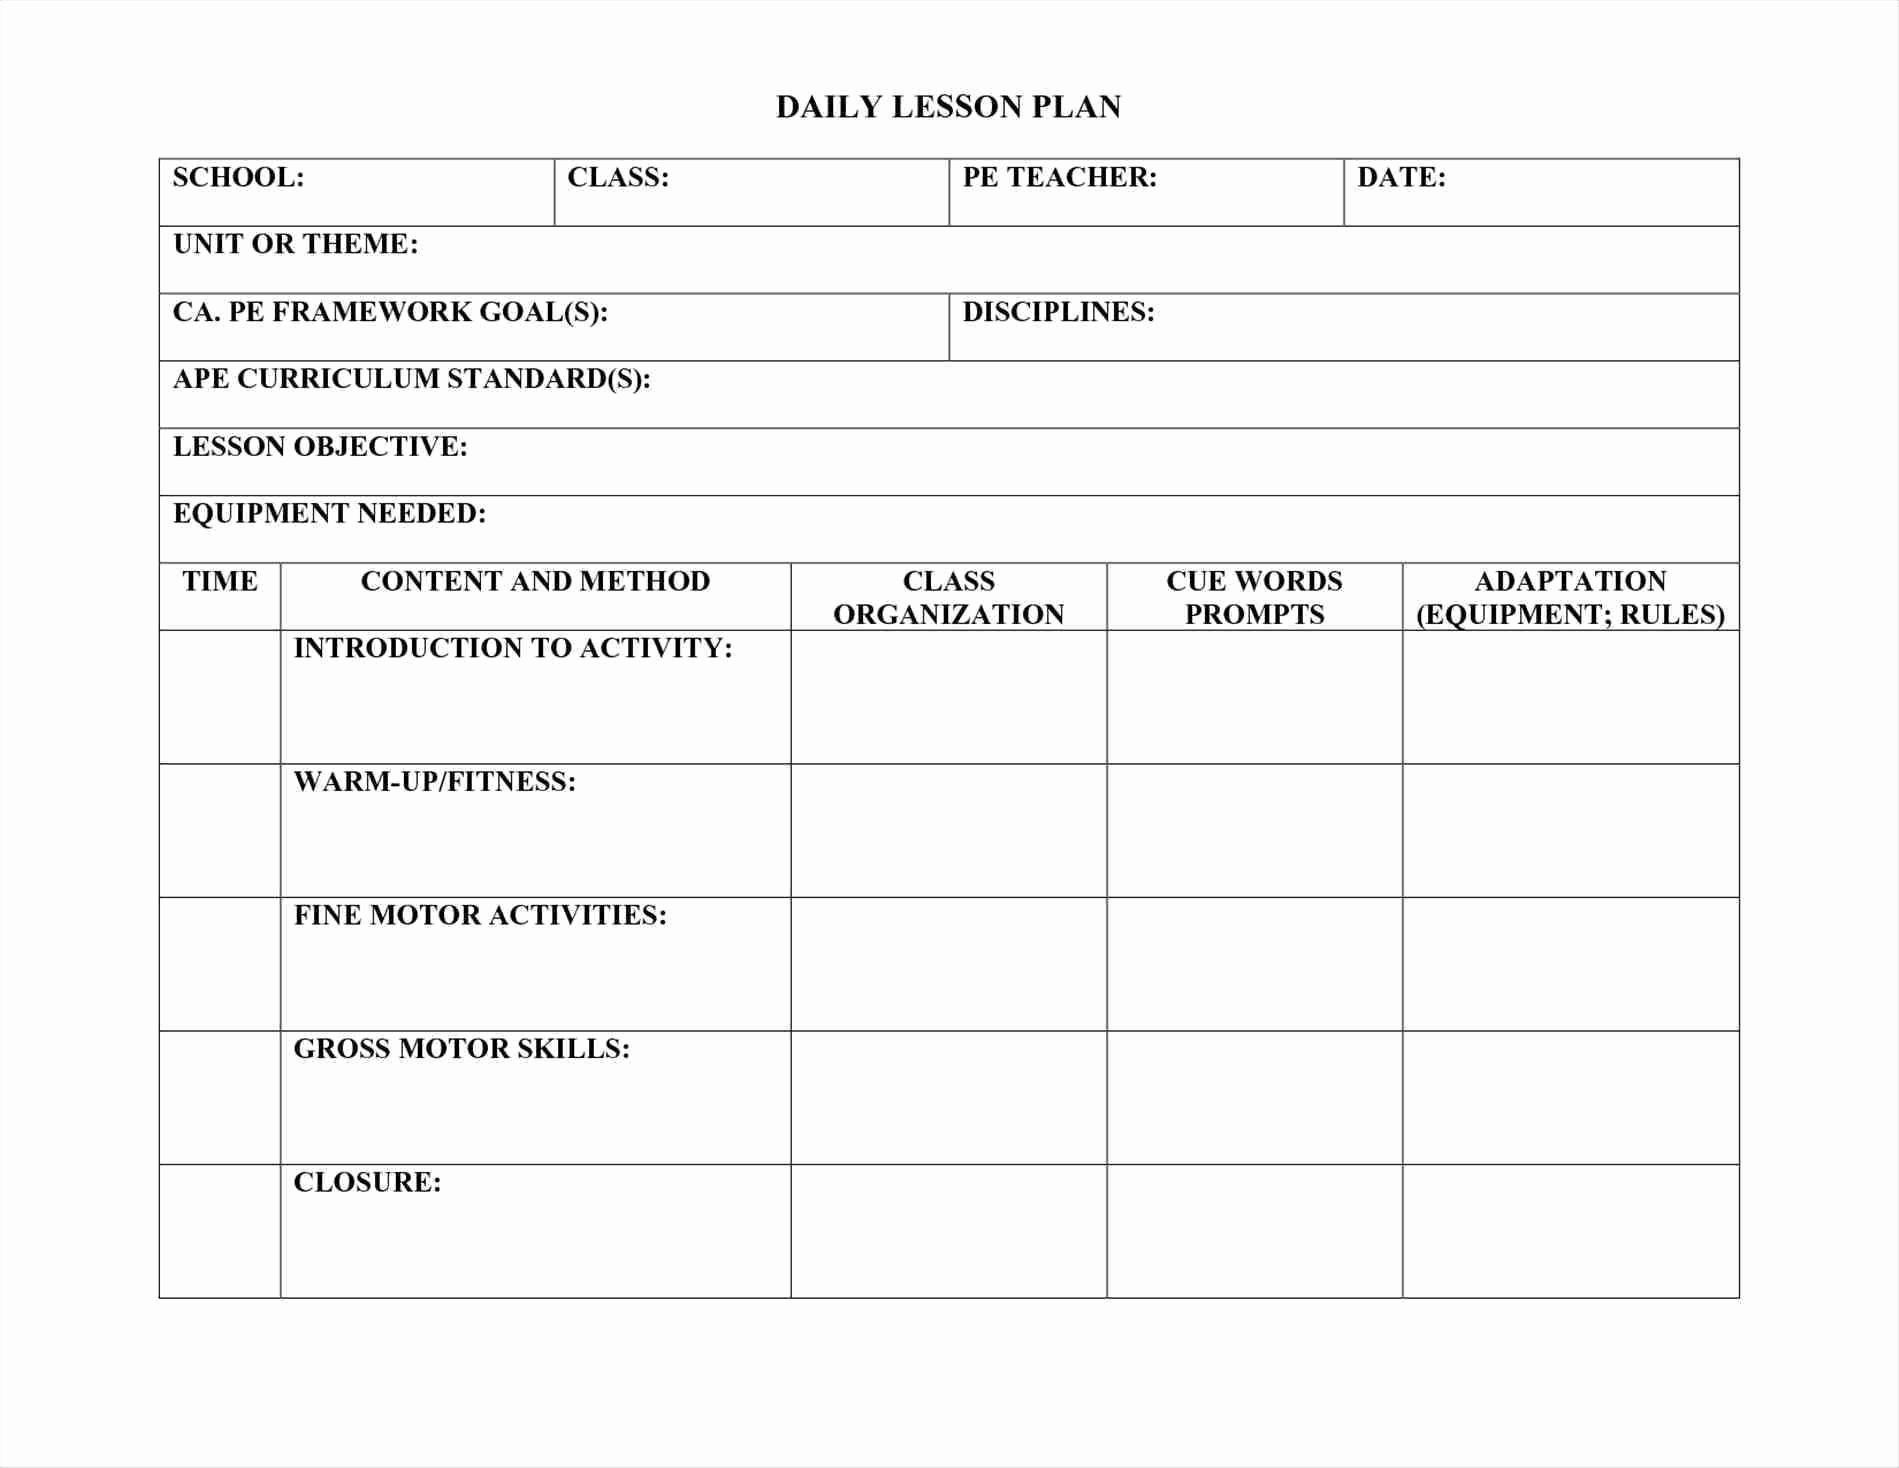 Weekly Lesson Plan Template Elementary Awesome Pin By Joanna Keysa On Free Tamplate Education Lesson Plans Lesson Plan Template Free Physical Education Lessons Daily lesson plan template elementary